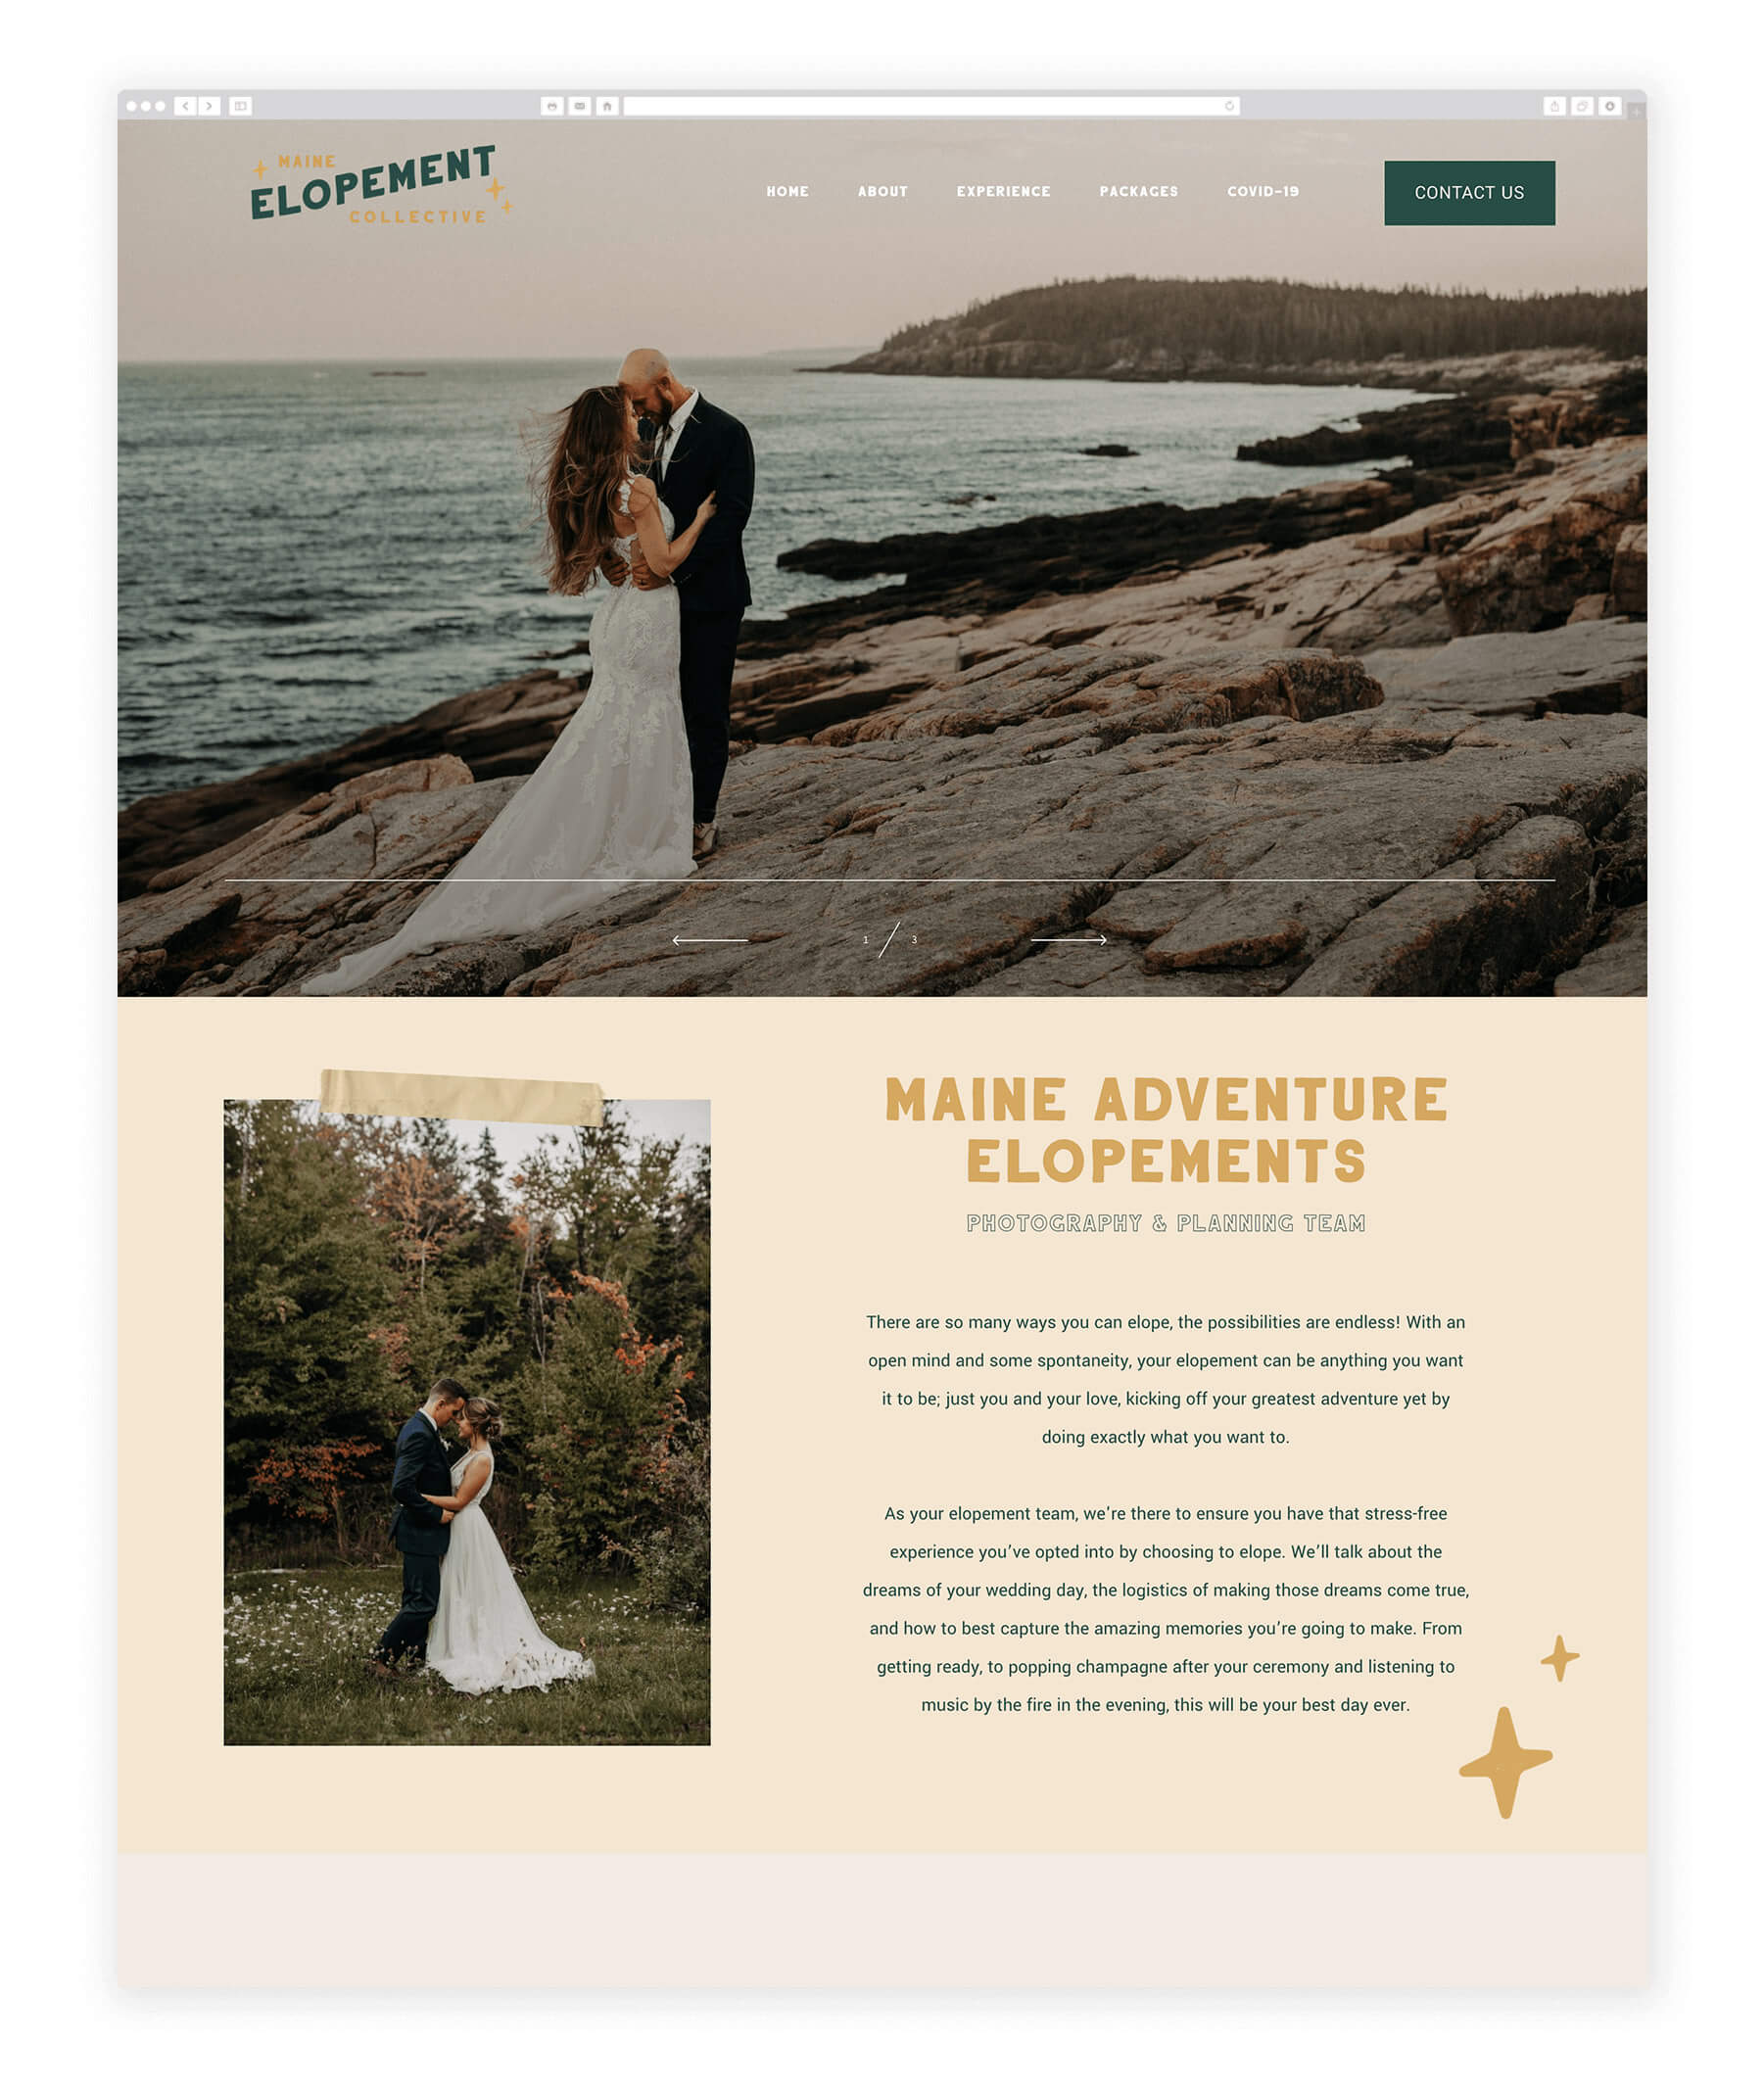 maine-elopement-collective-wordpress-website-faro-theme